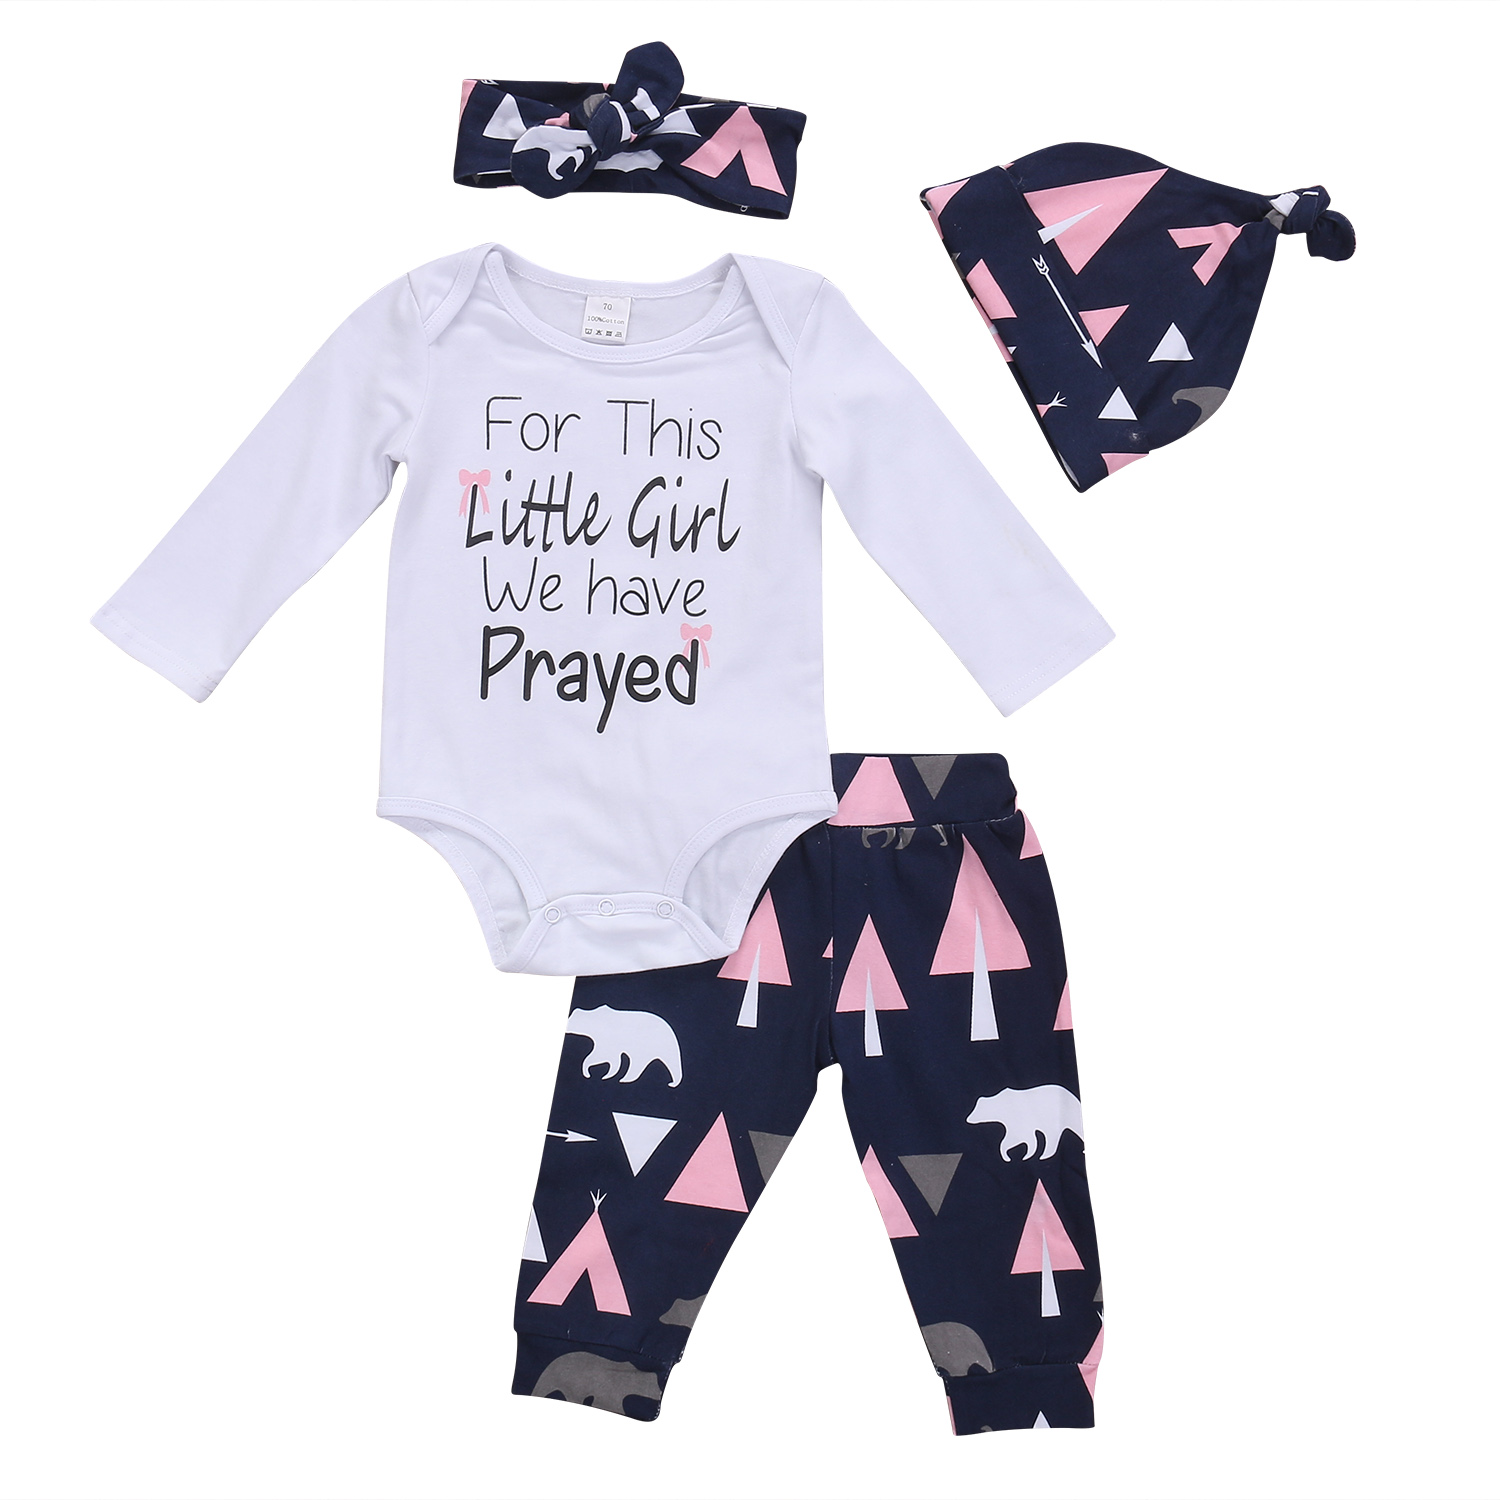 4Pcs Newborn Kids Baby Girl Clothes Long Sleeve Romper Tops Pants Hat Home Outfits Set Clothes 0-24M